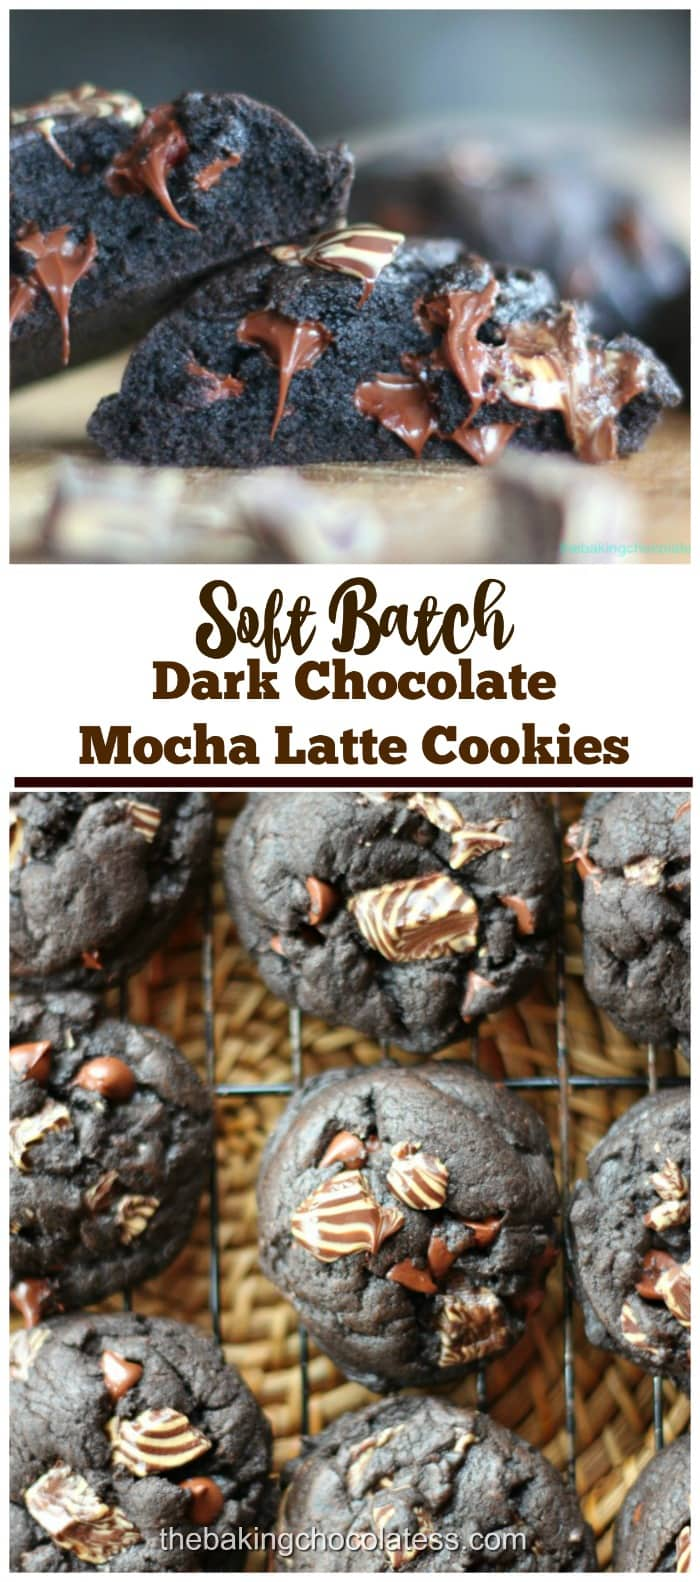 Intense Dark Chocolate Mocha Latte Cookies